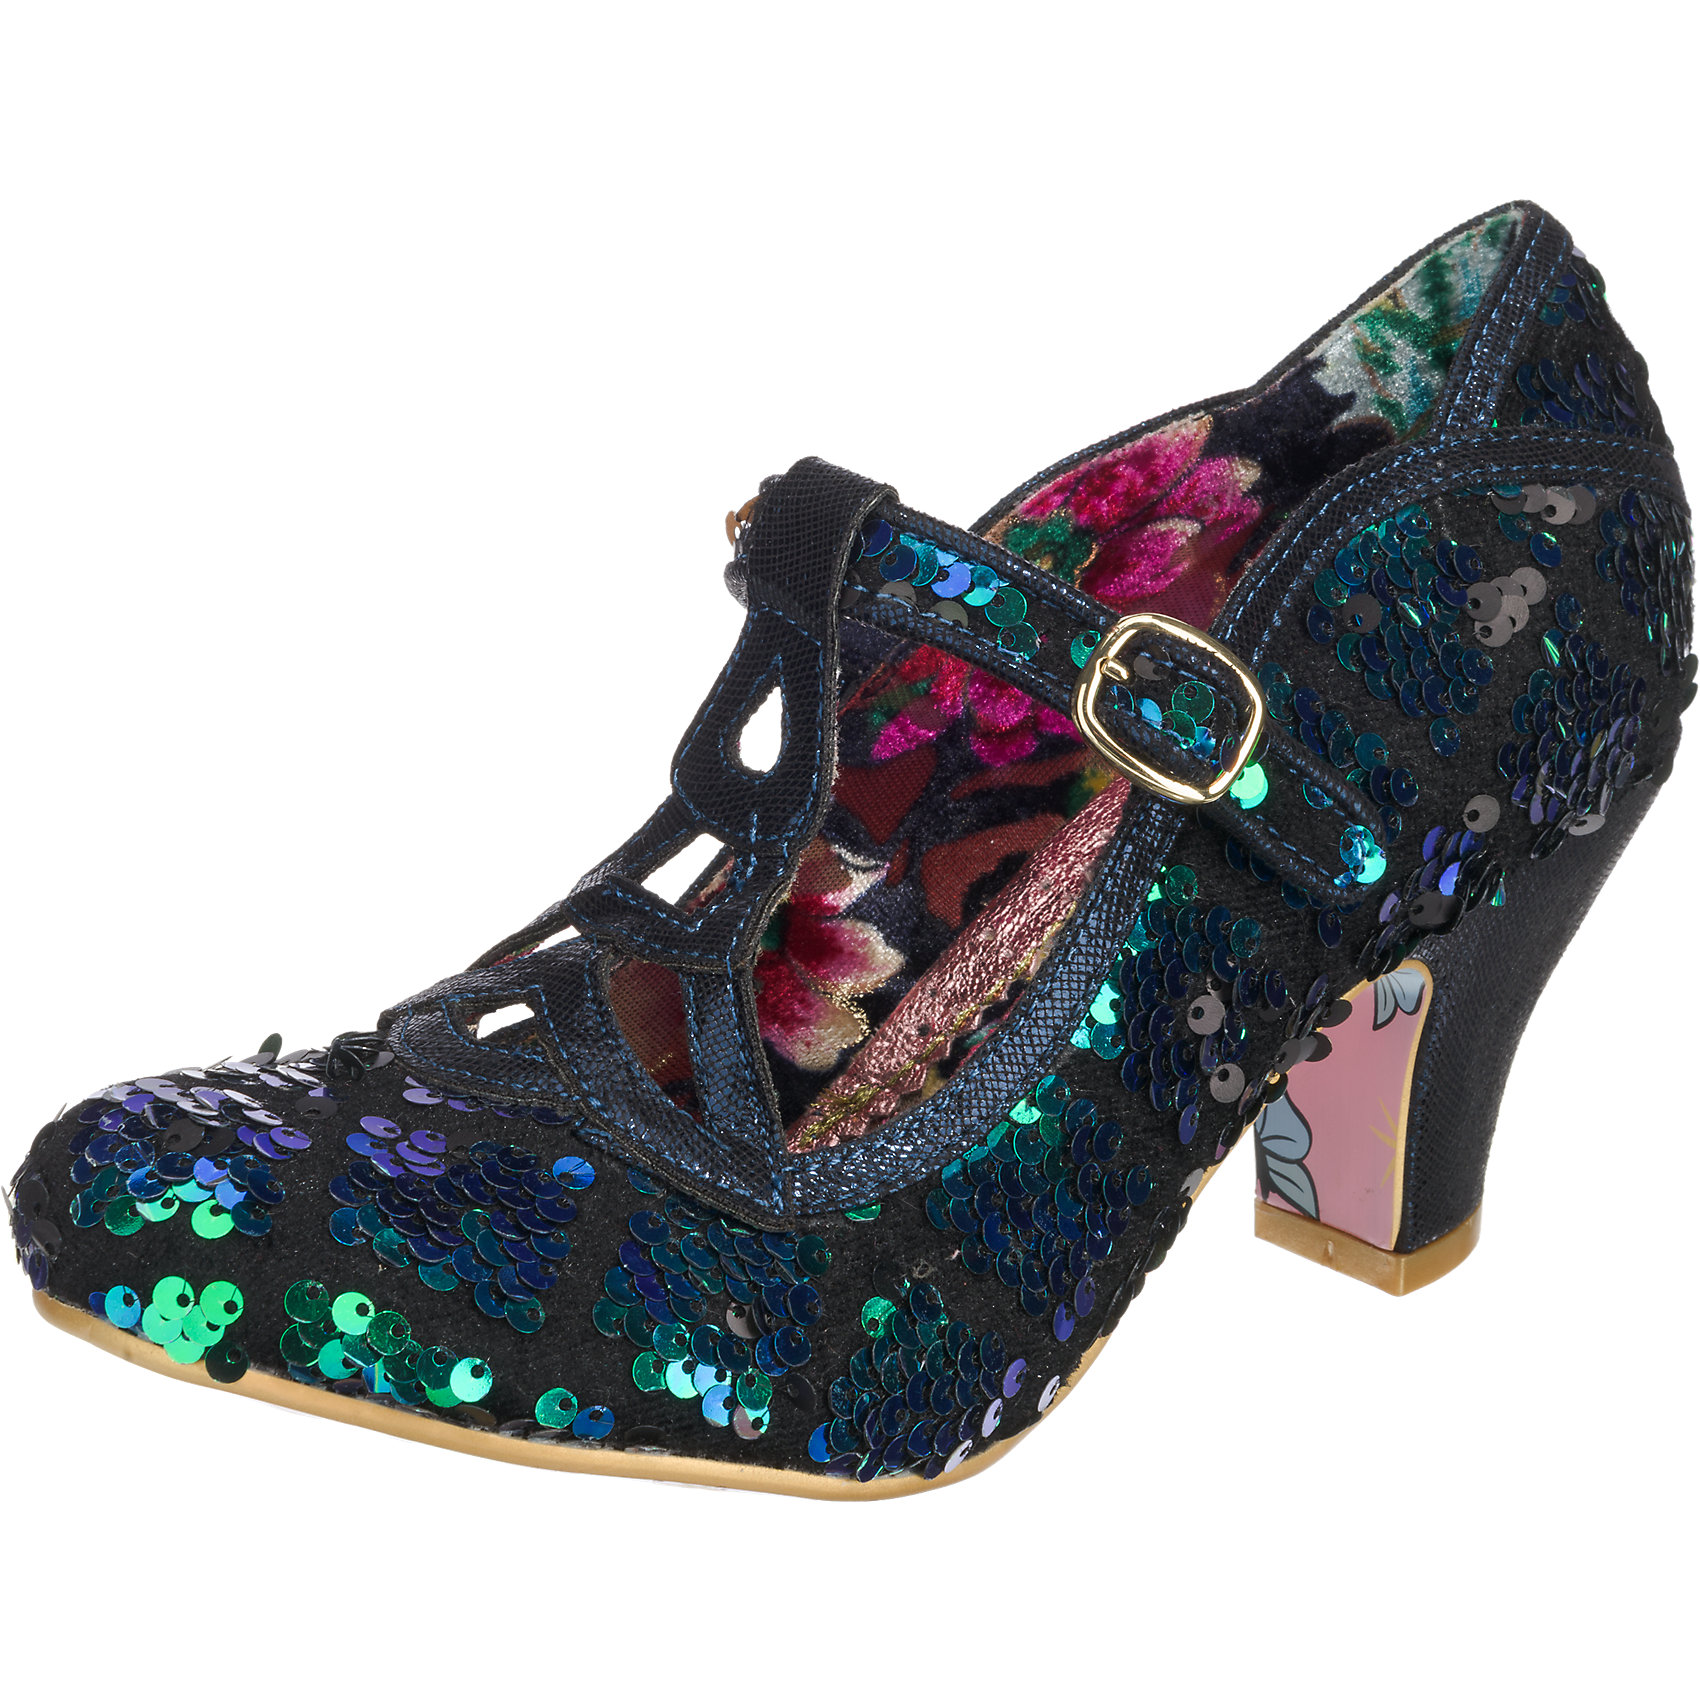 Neu Irregular Choice Nicely Done Done Done Pumps 5753544 für Damen grün-kombi 7b8288